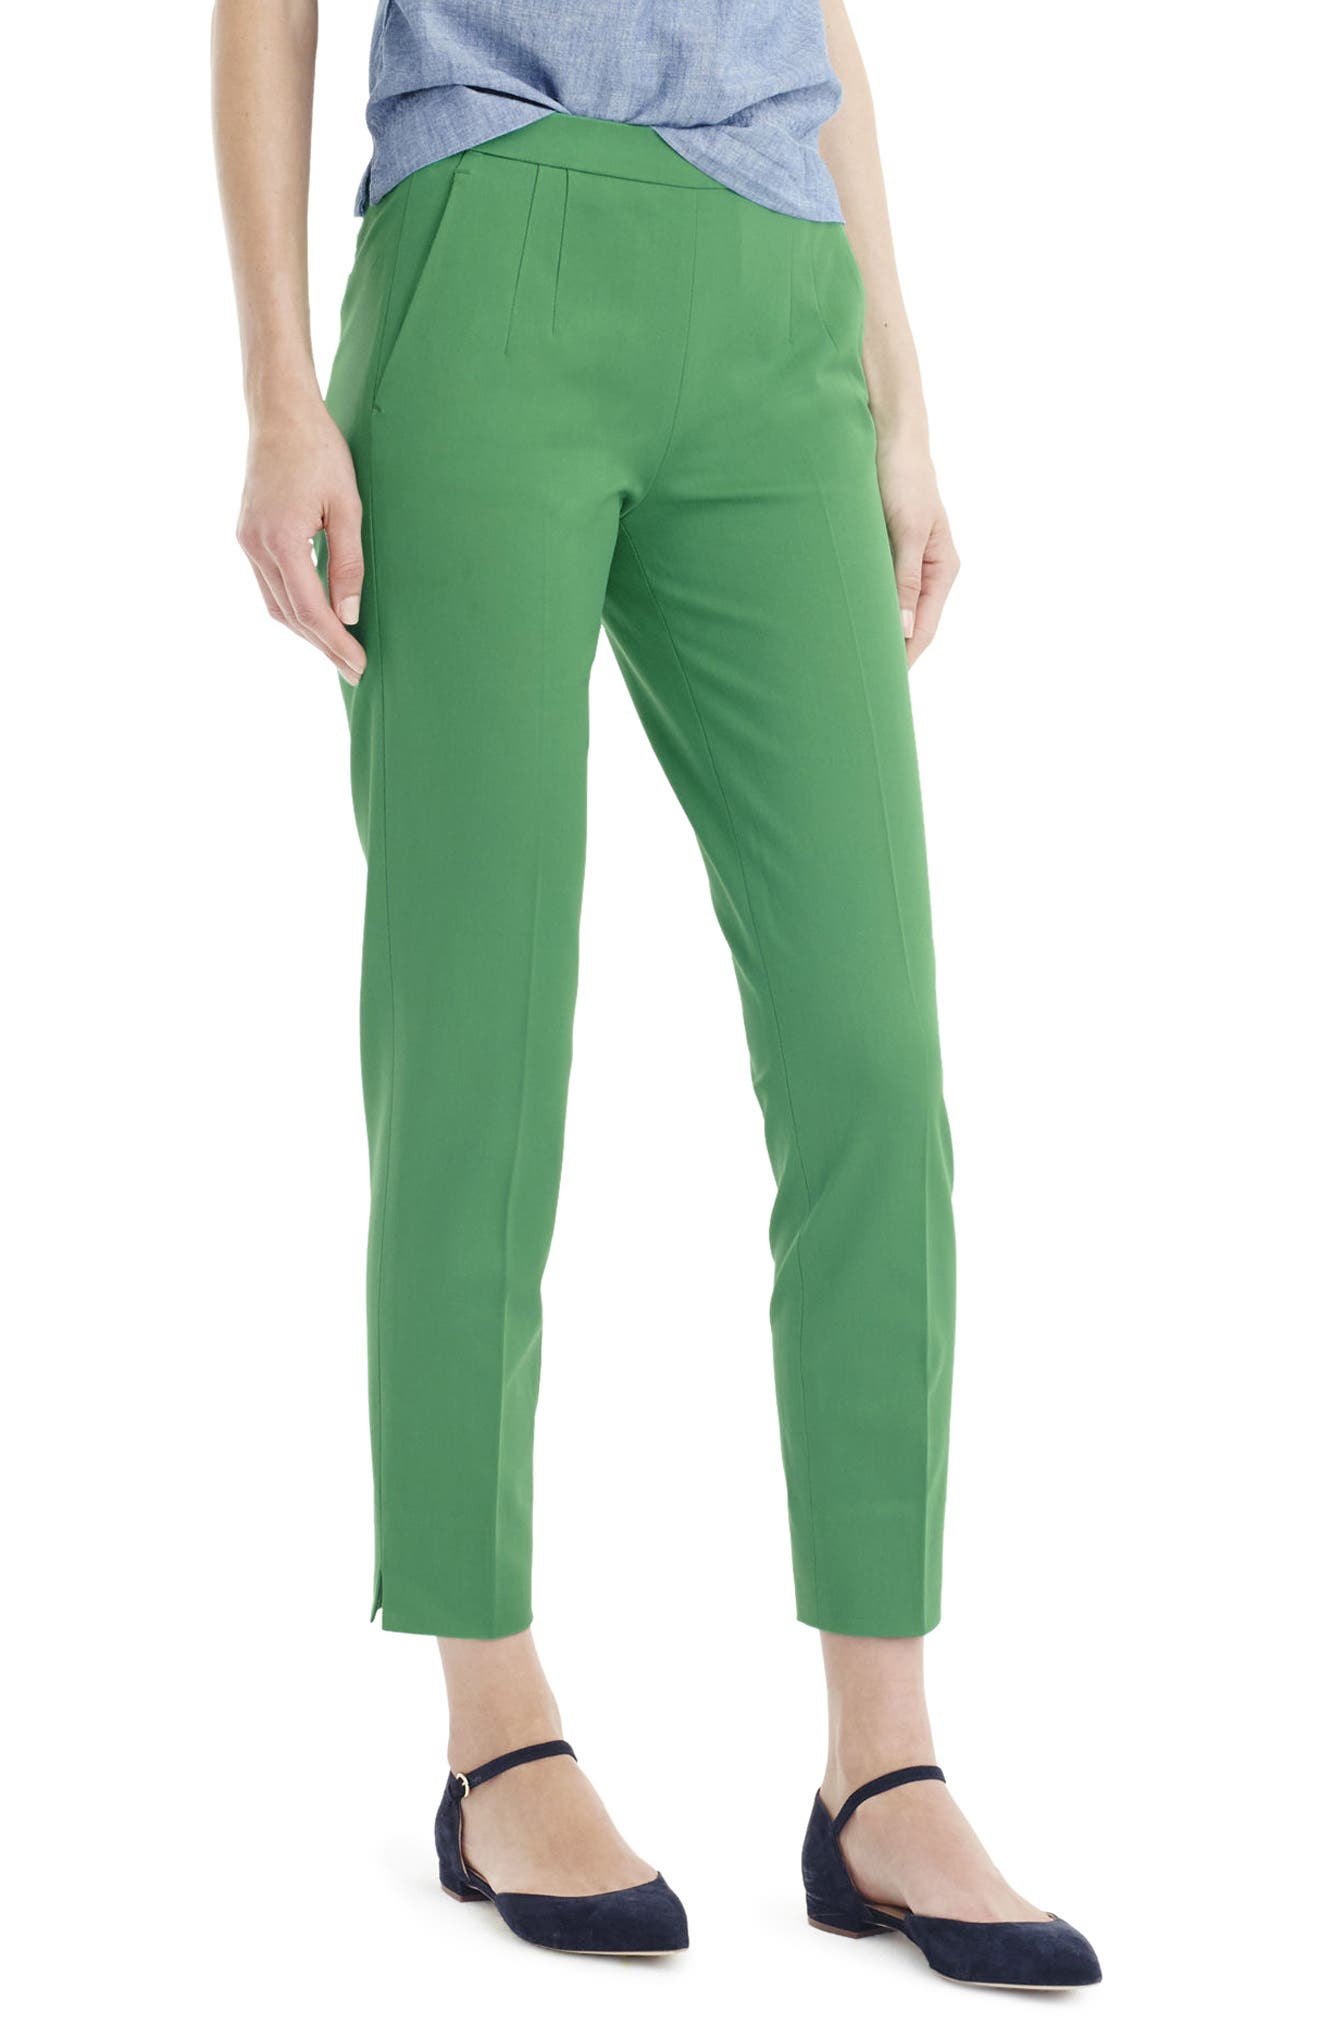 J.CREW 'Martie' Bi-Stretch Cotton Blend Pants